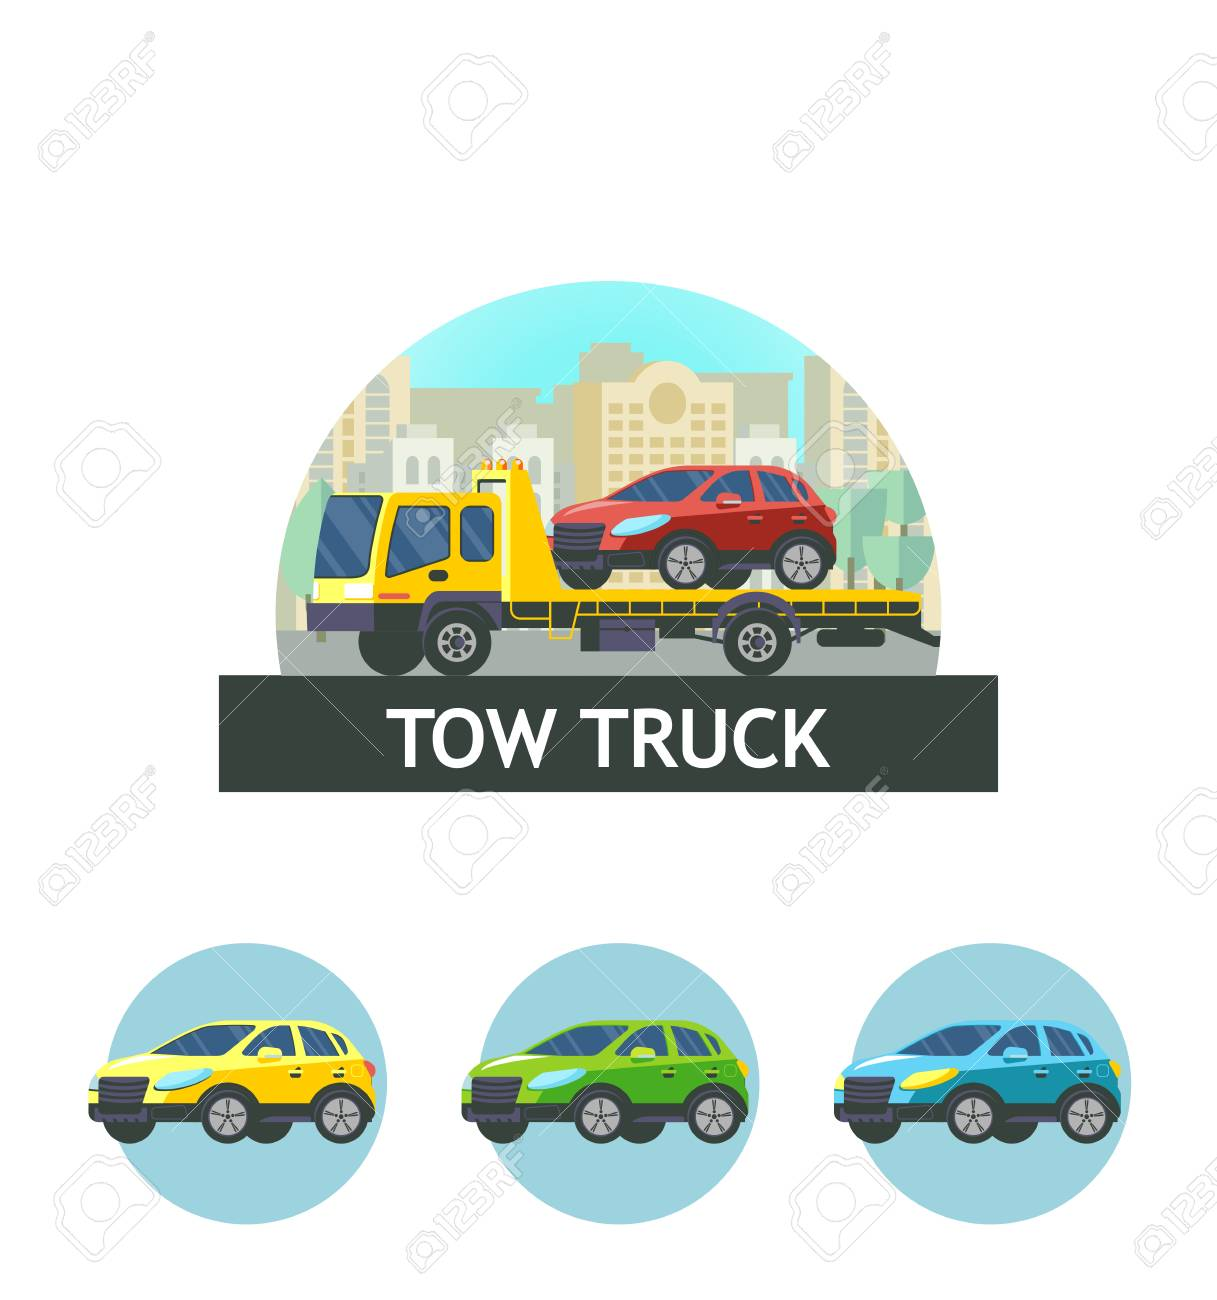 tow truck for transportation faulty cars vector illustration